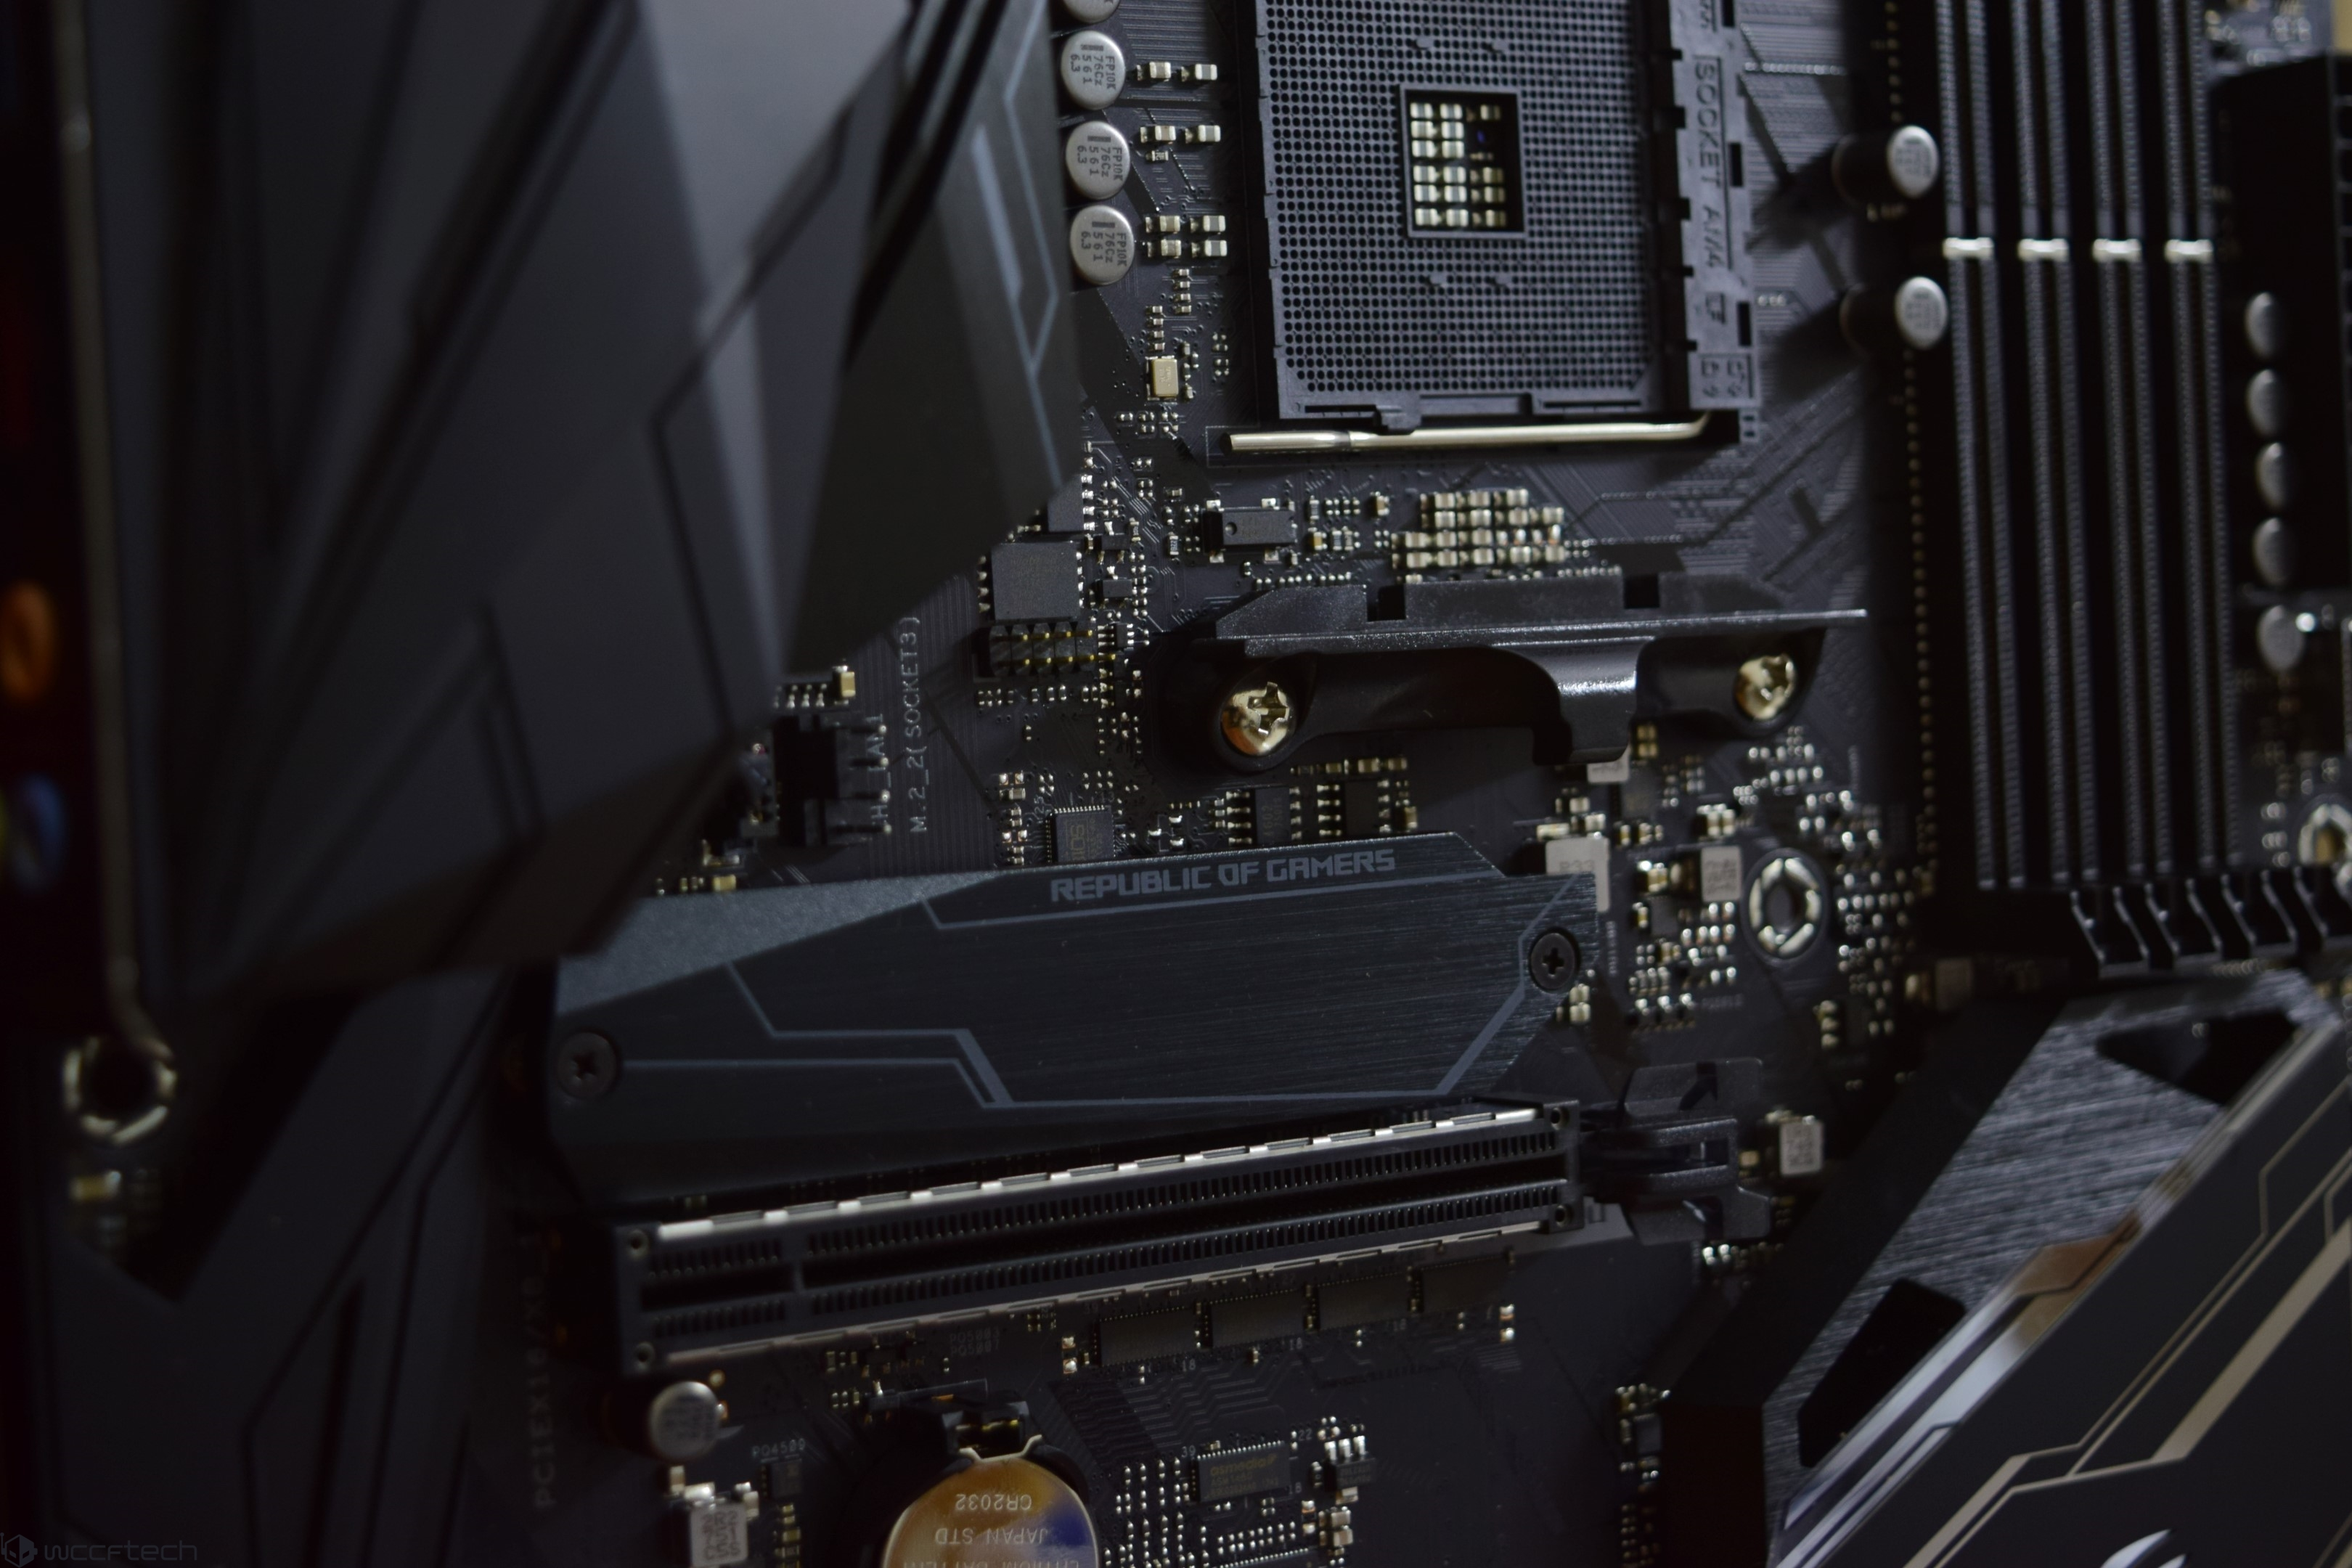 These Are ASUS X570 Motherboards for AMD Ryzen 3000 CPUs